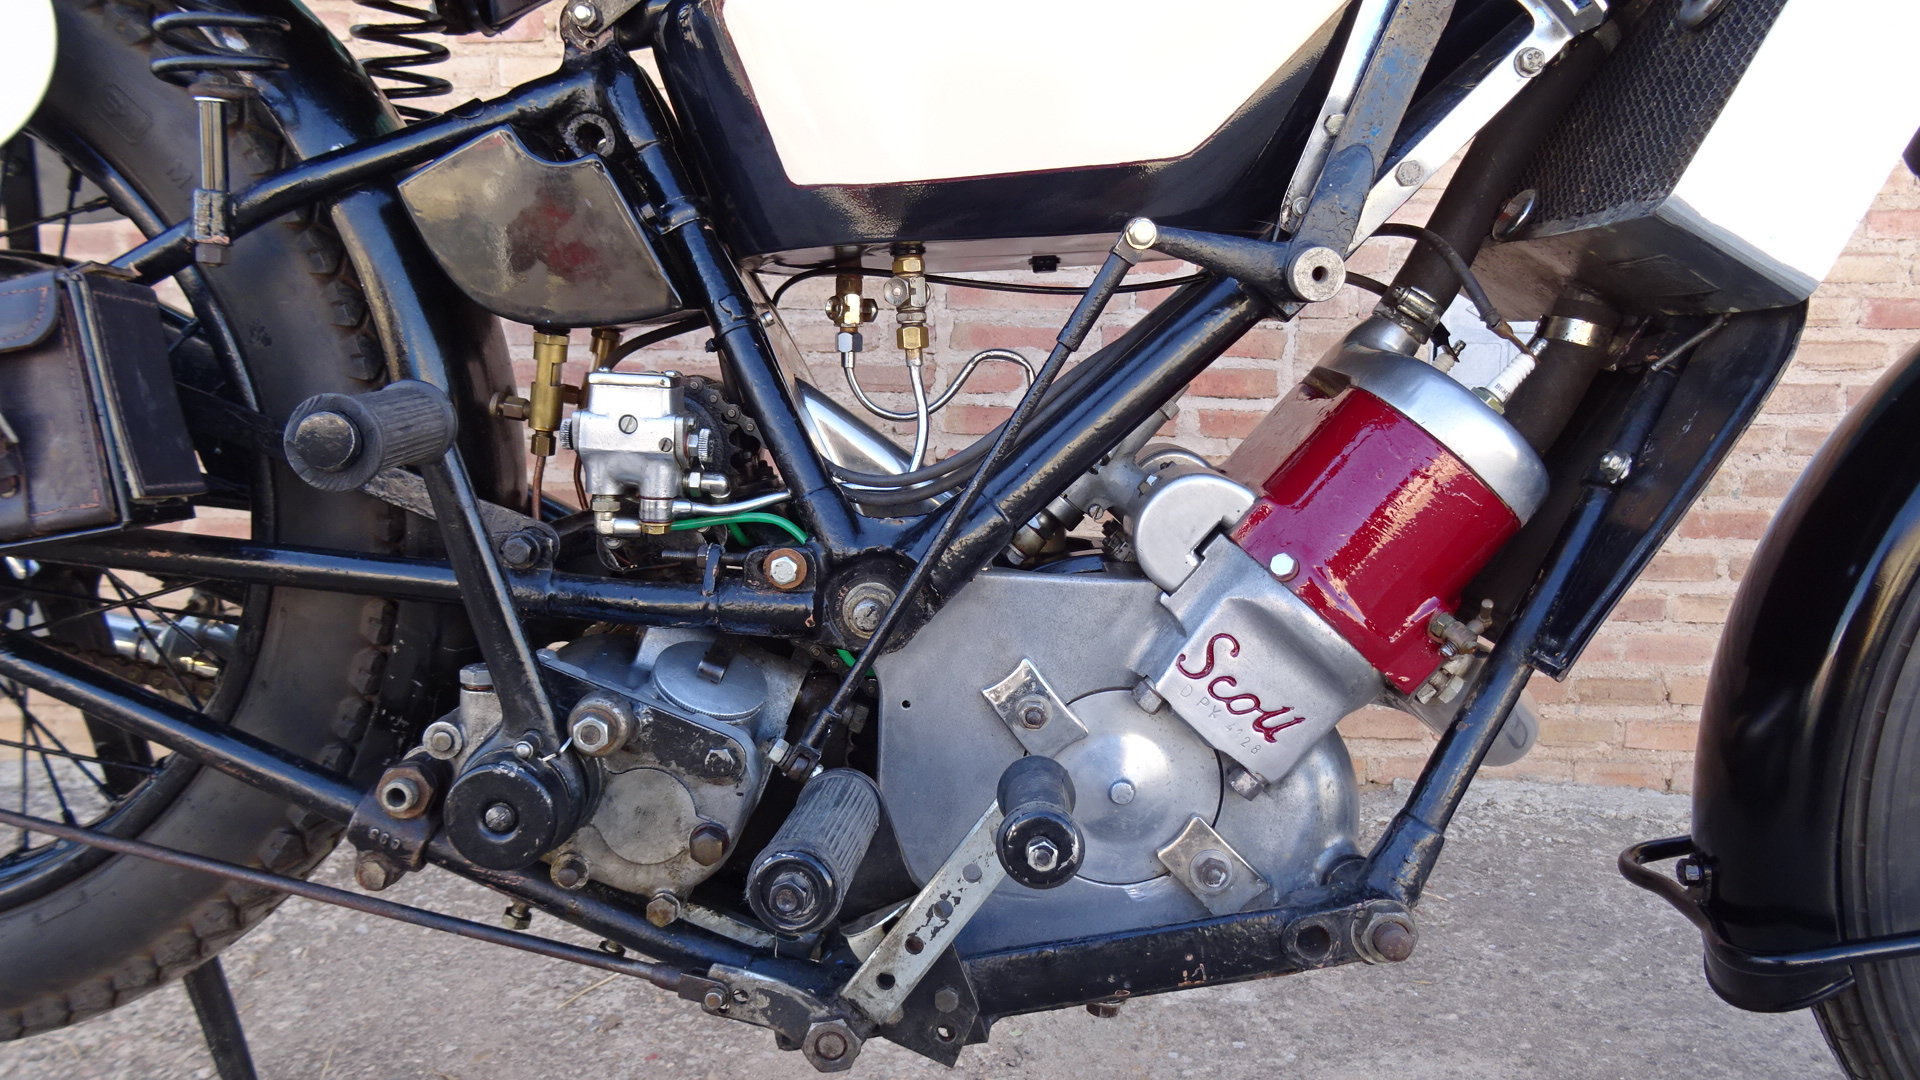 1926 Scott flying squirrel 596cc type tt racer For Sale (picture 4 of 6)